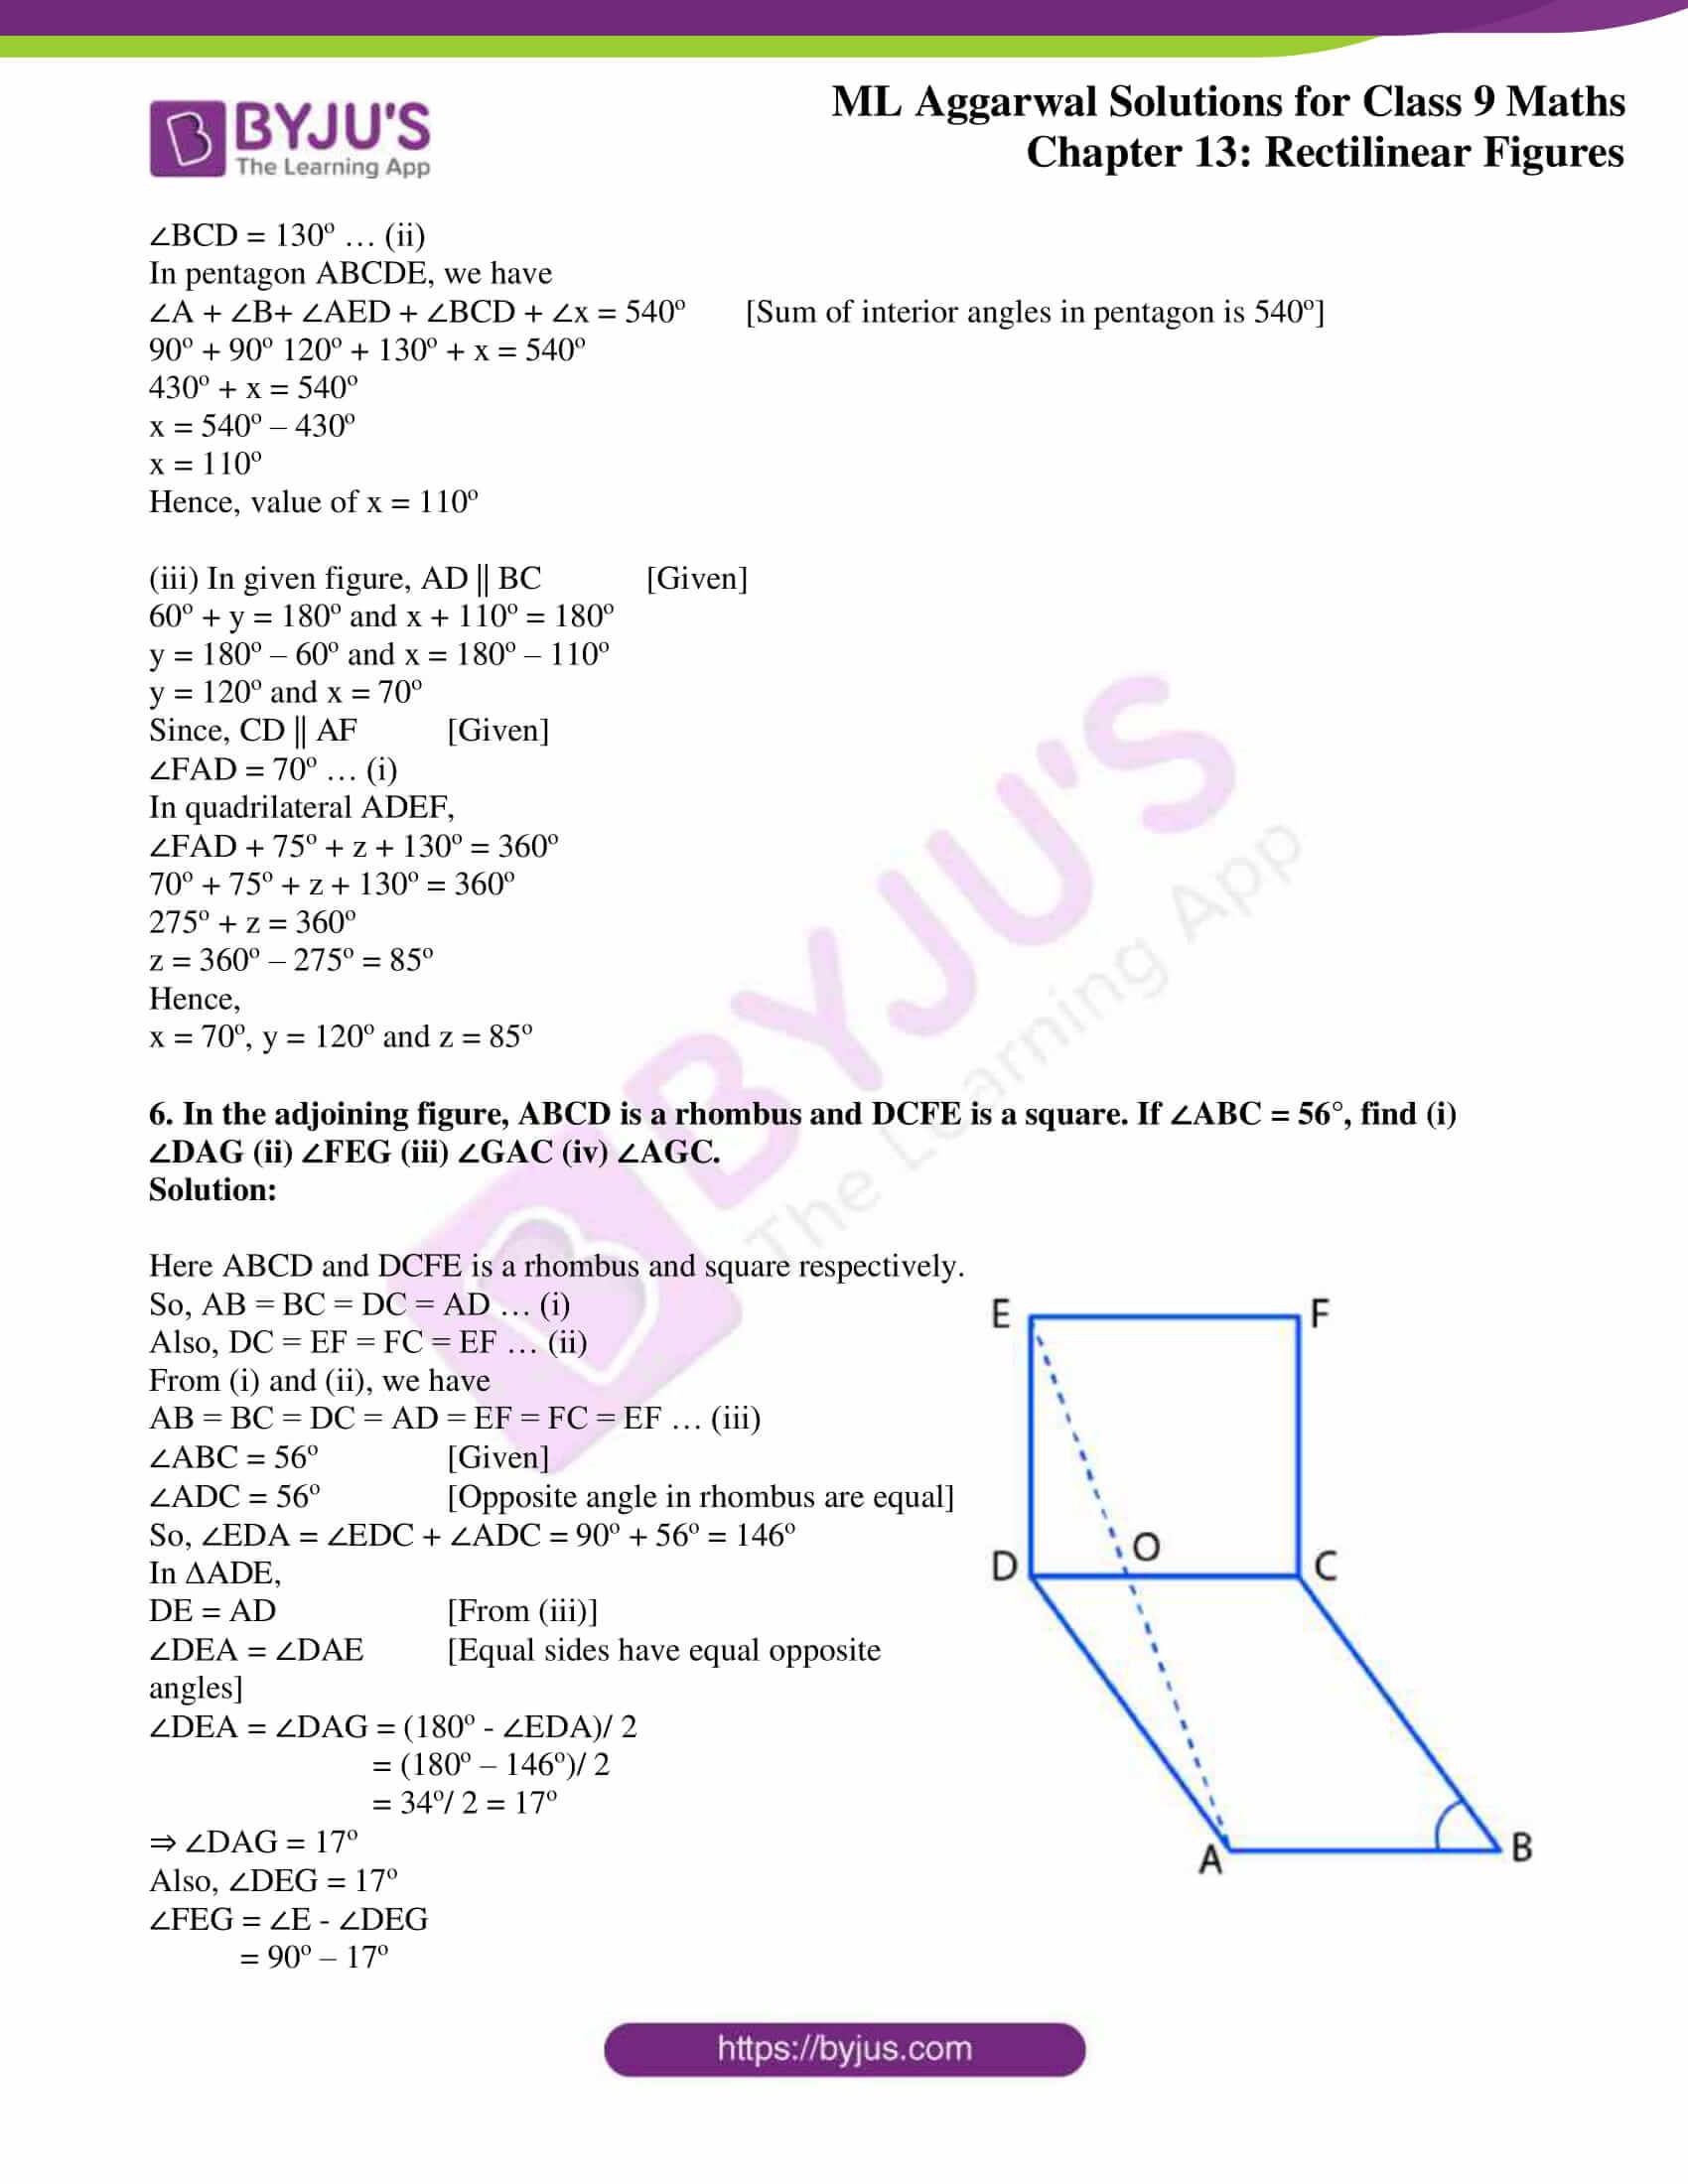 ml aggarwal solutions for class 9 maths chapter 13 44